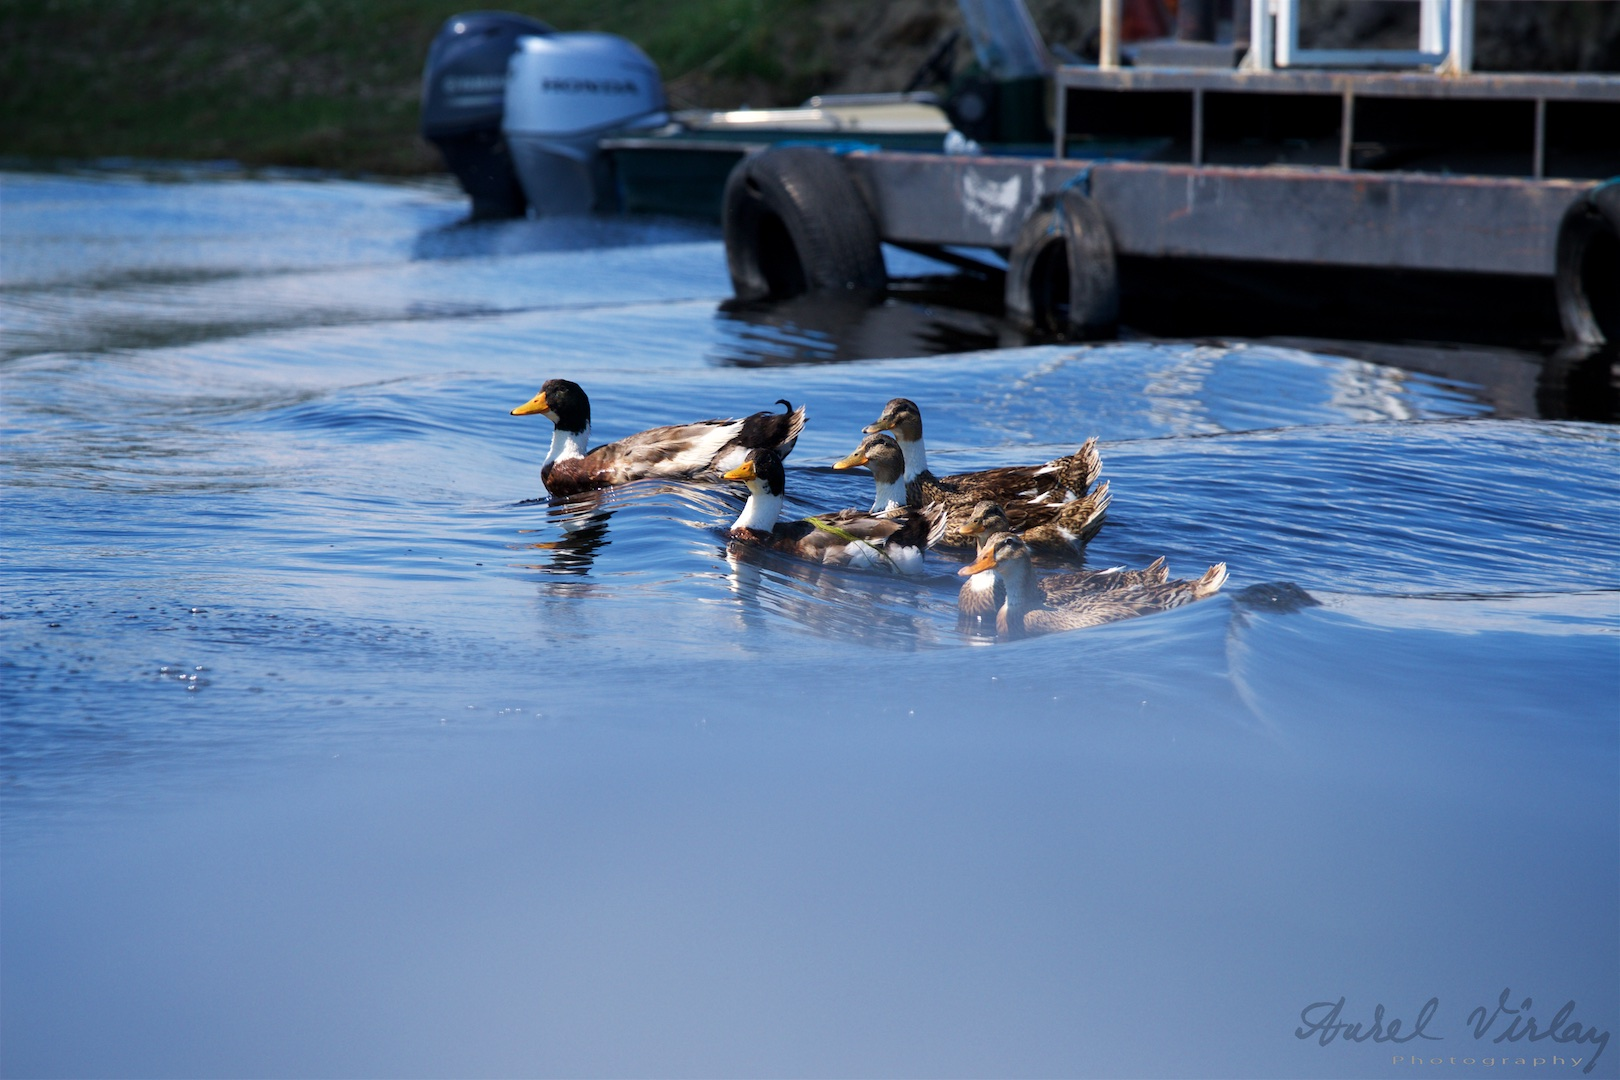 A family of wild ducks floating on the waves